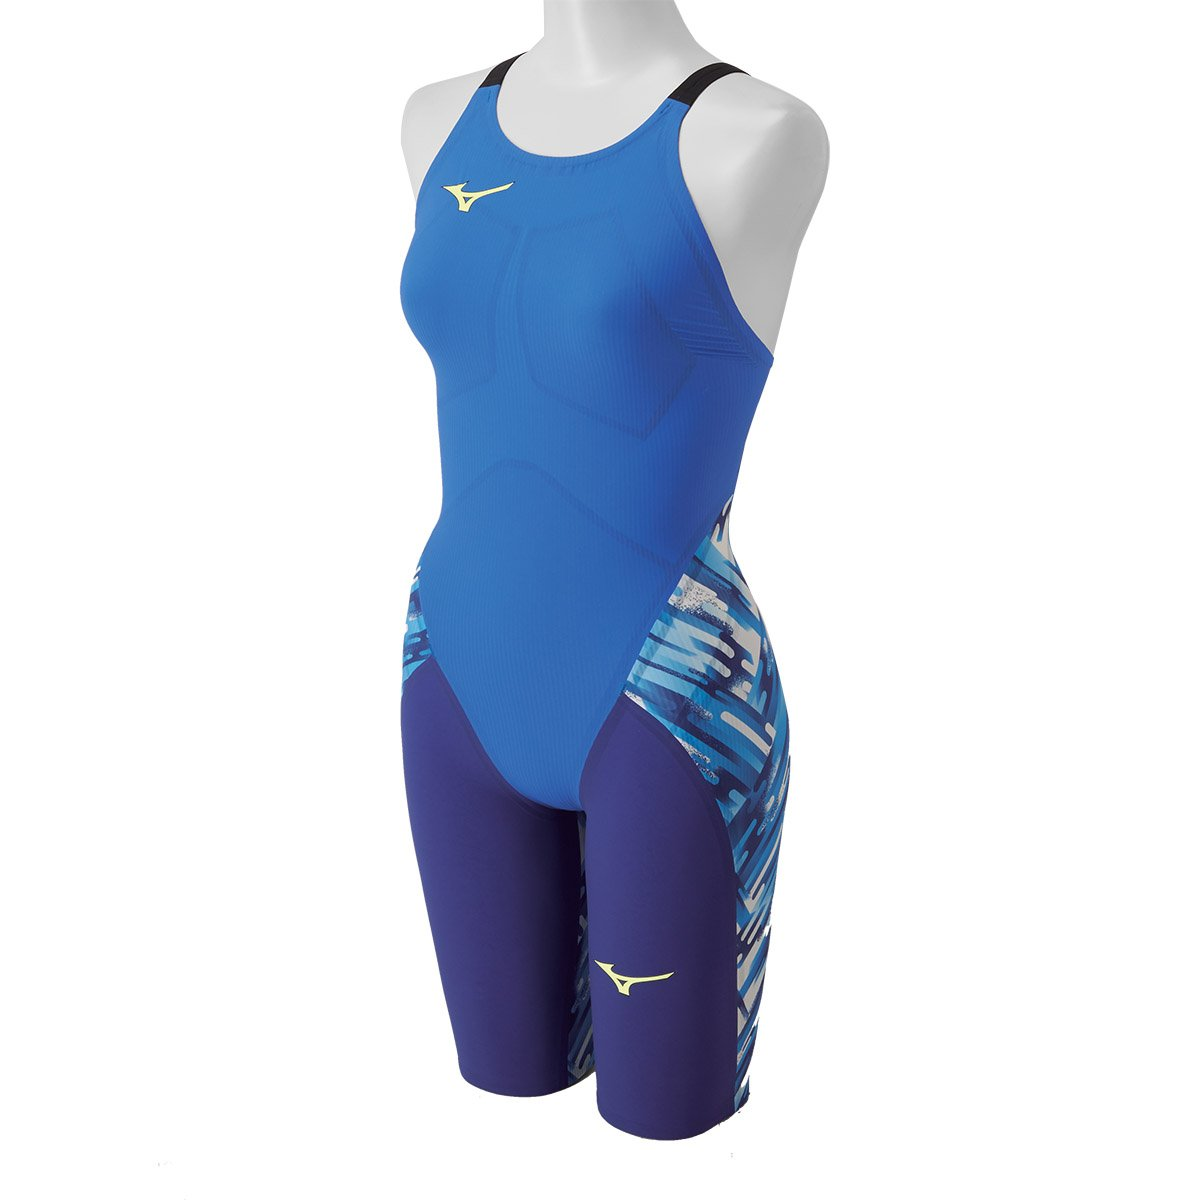 GX SONIC III ST Swimsuit for Women Blue